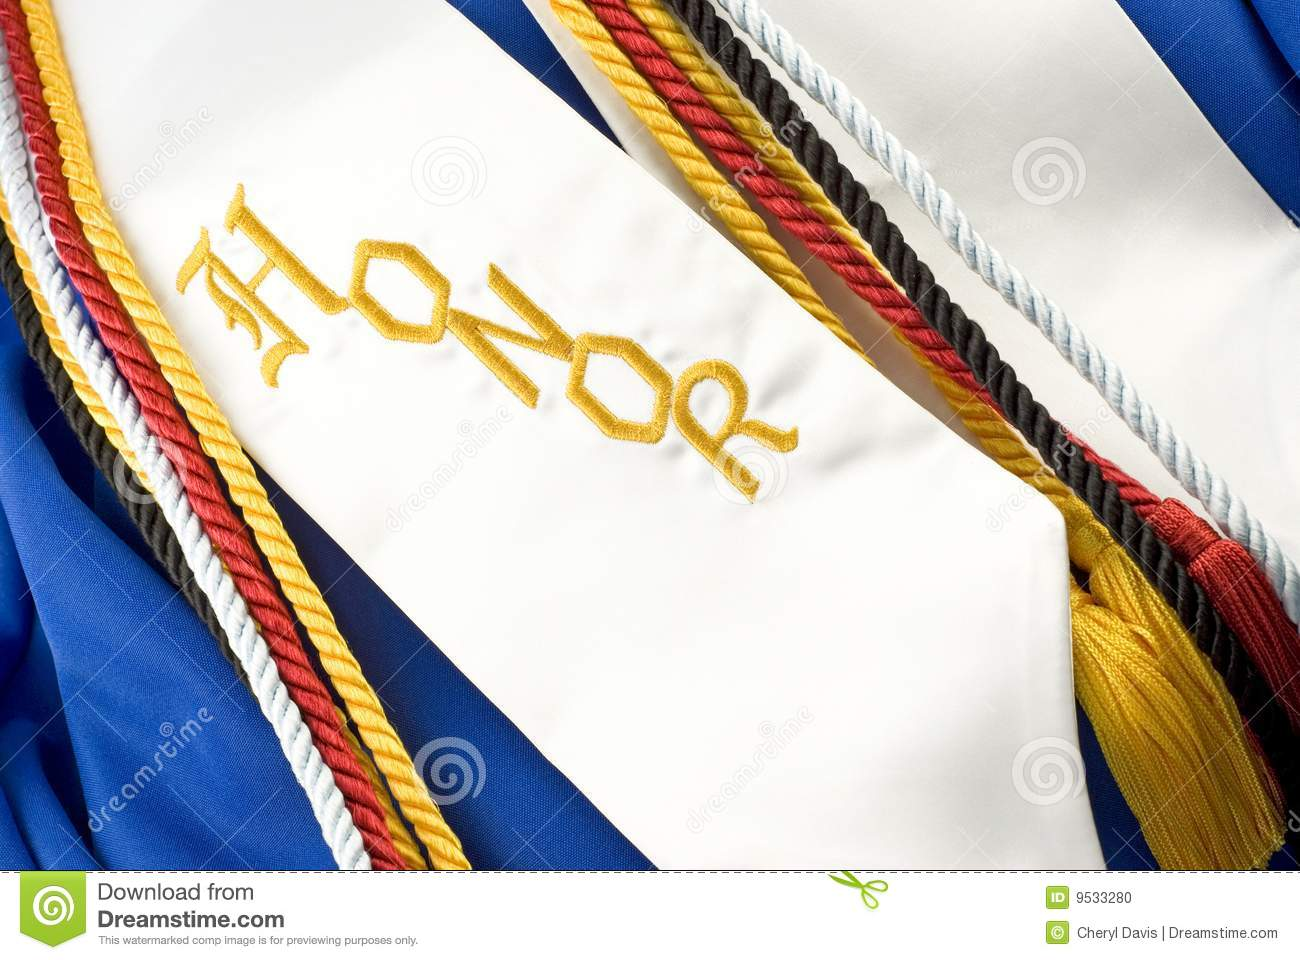 Graduating with Honors stock photo. Image of education ...